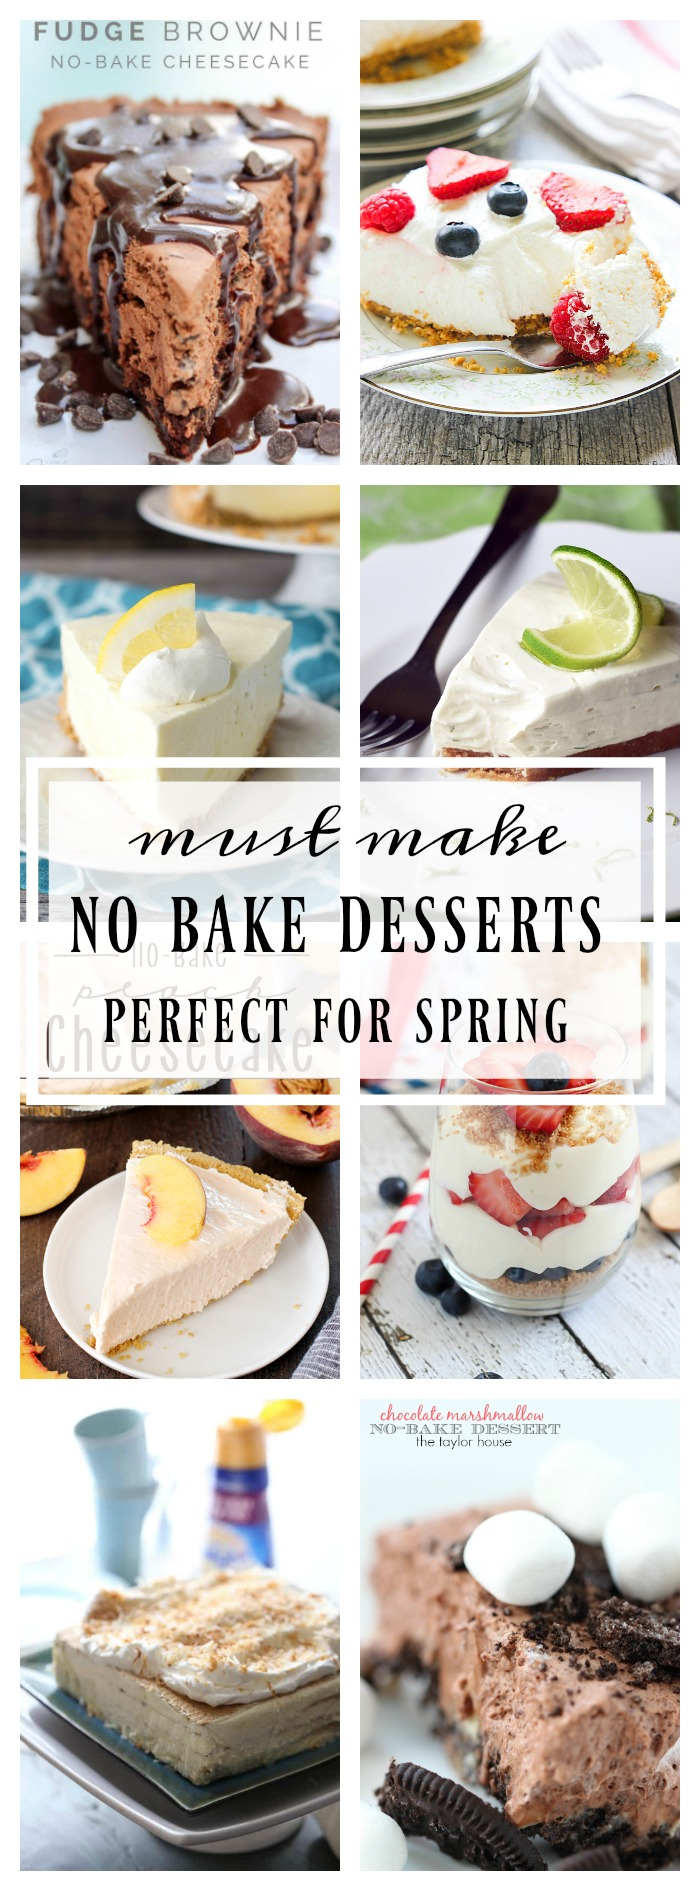 no bake recipes for spring